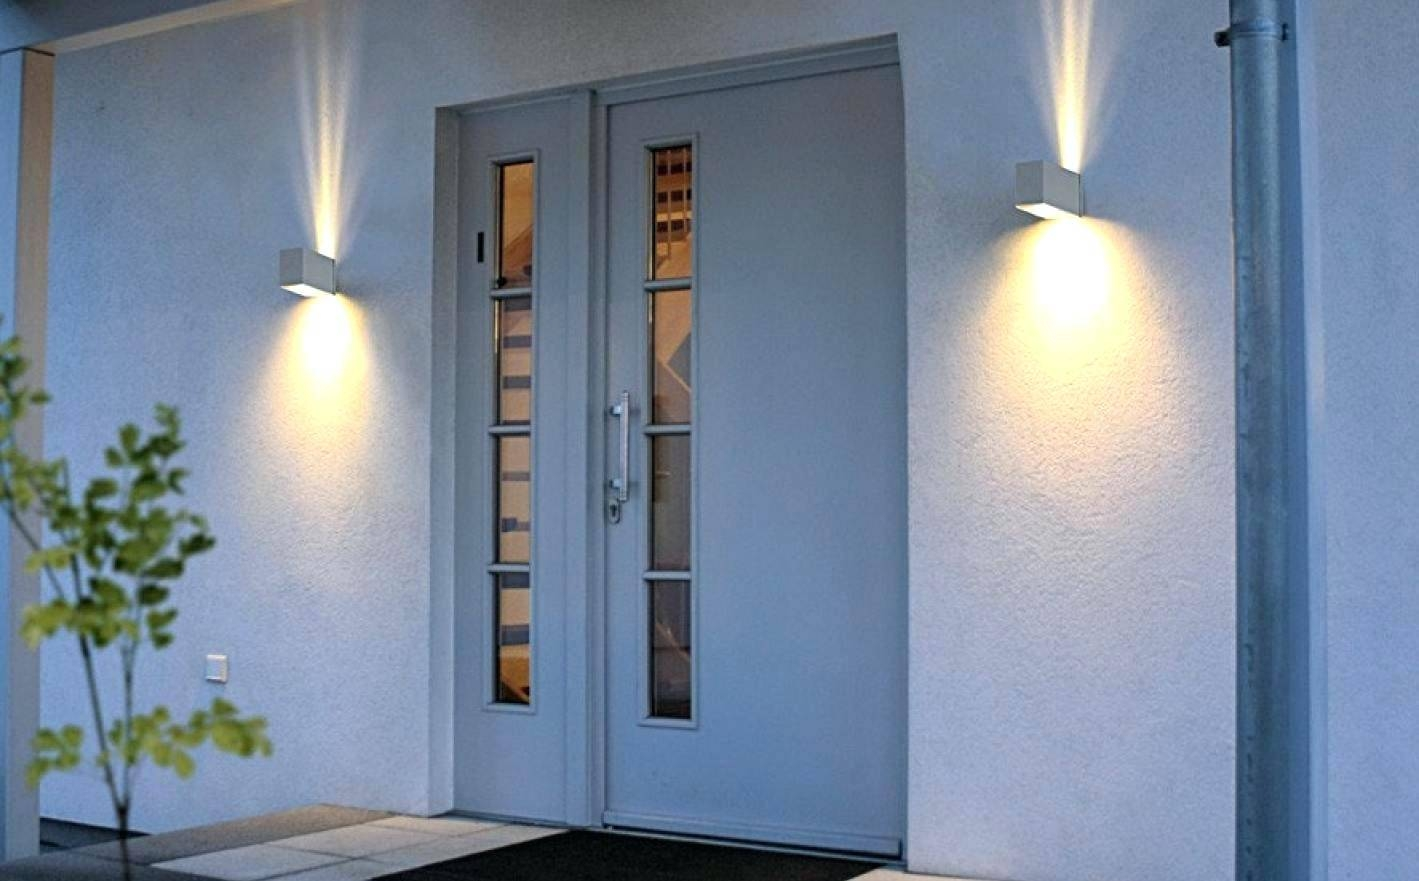 Led Light Wall Art Puck Lamp Lights – Suintramurals For Current Commercial Wall Art (View 19 of 20)